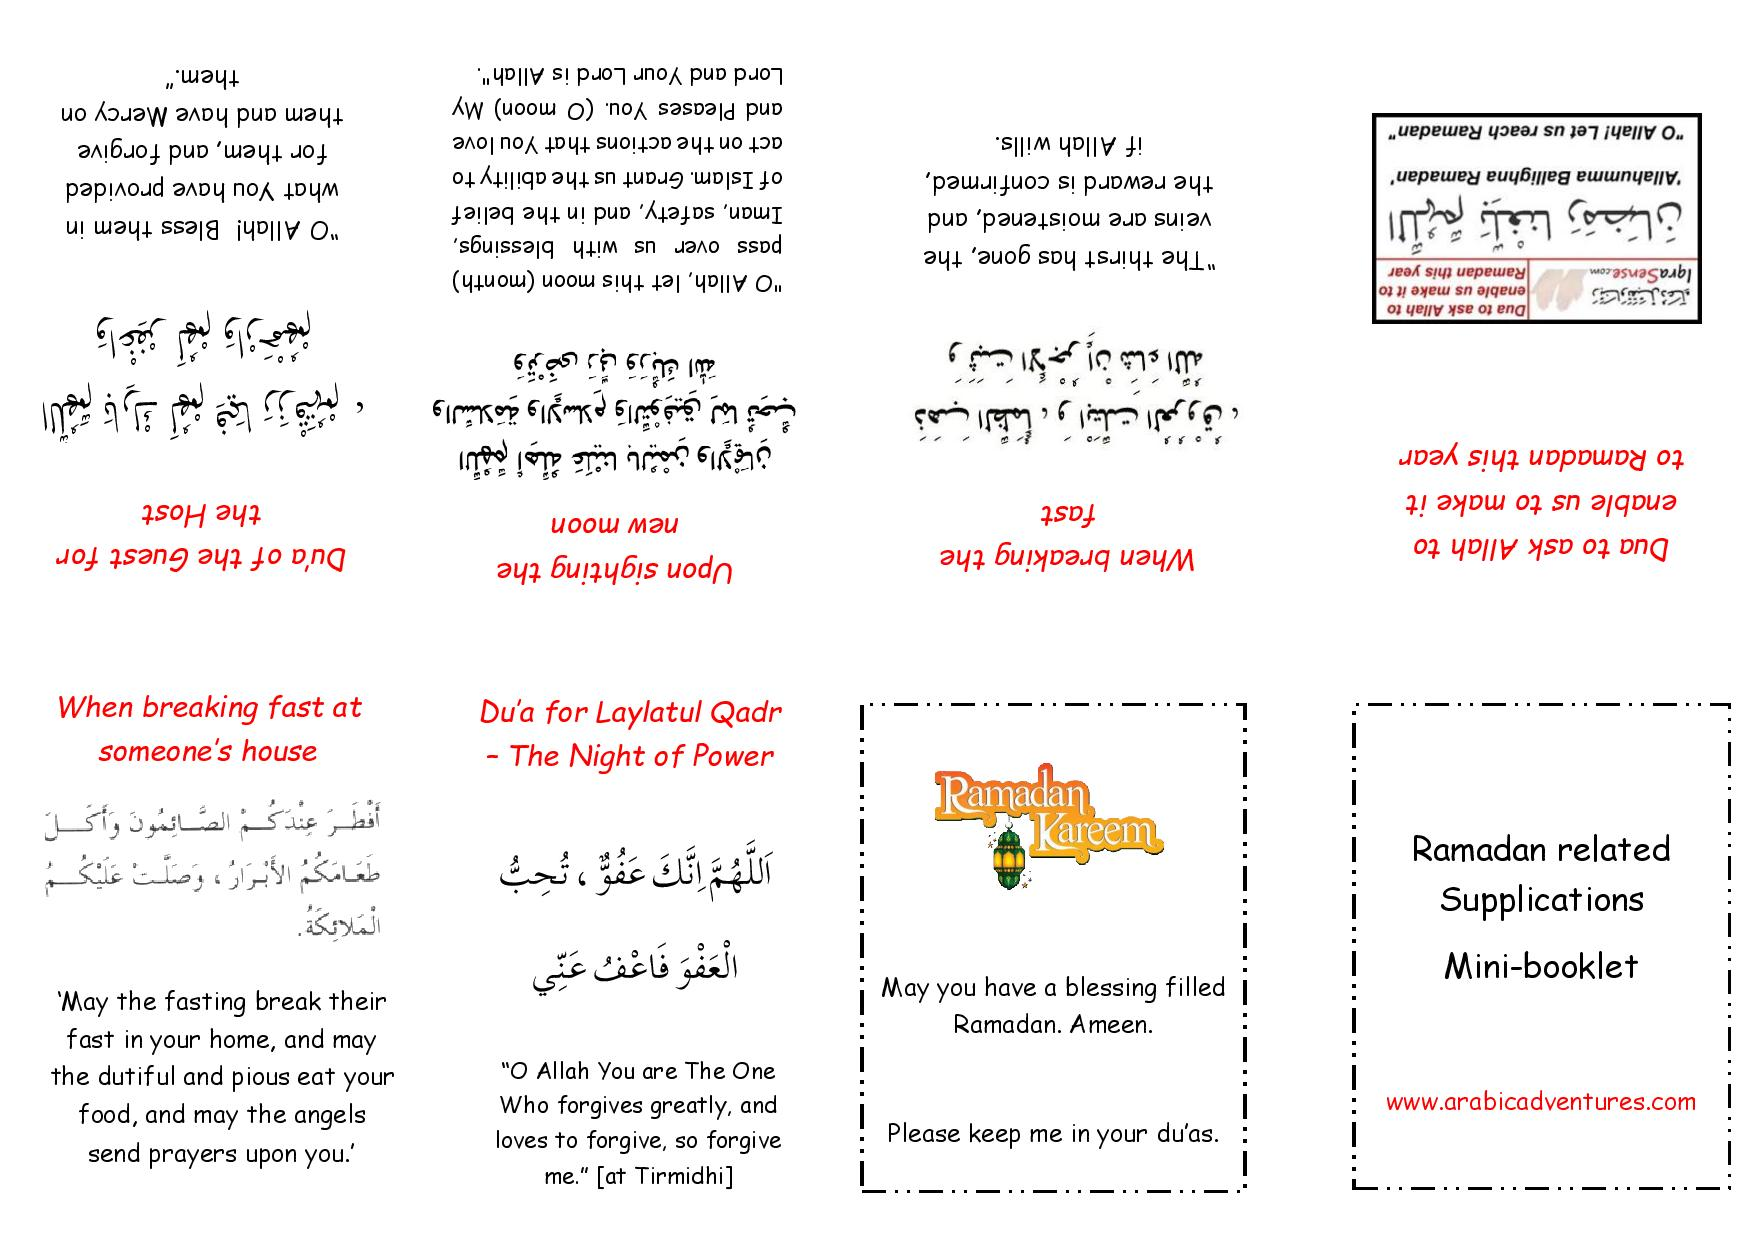 Ramadan Supplication Booklet